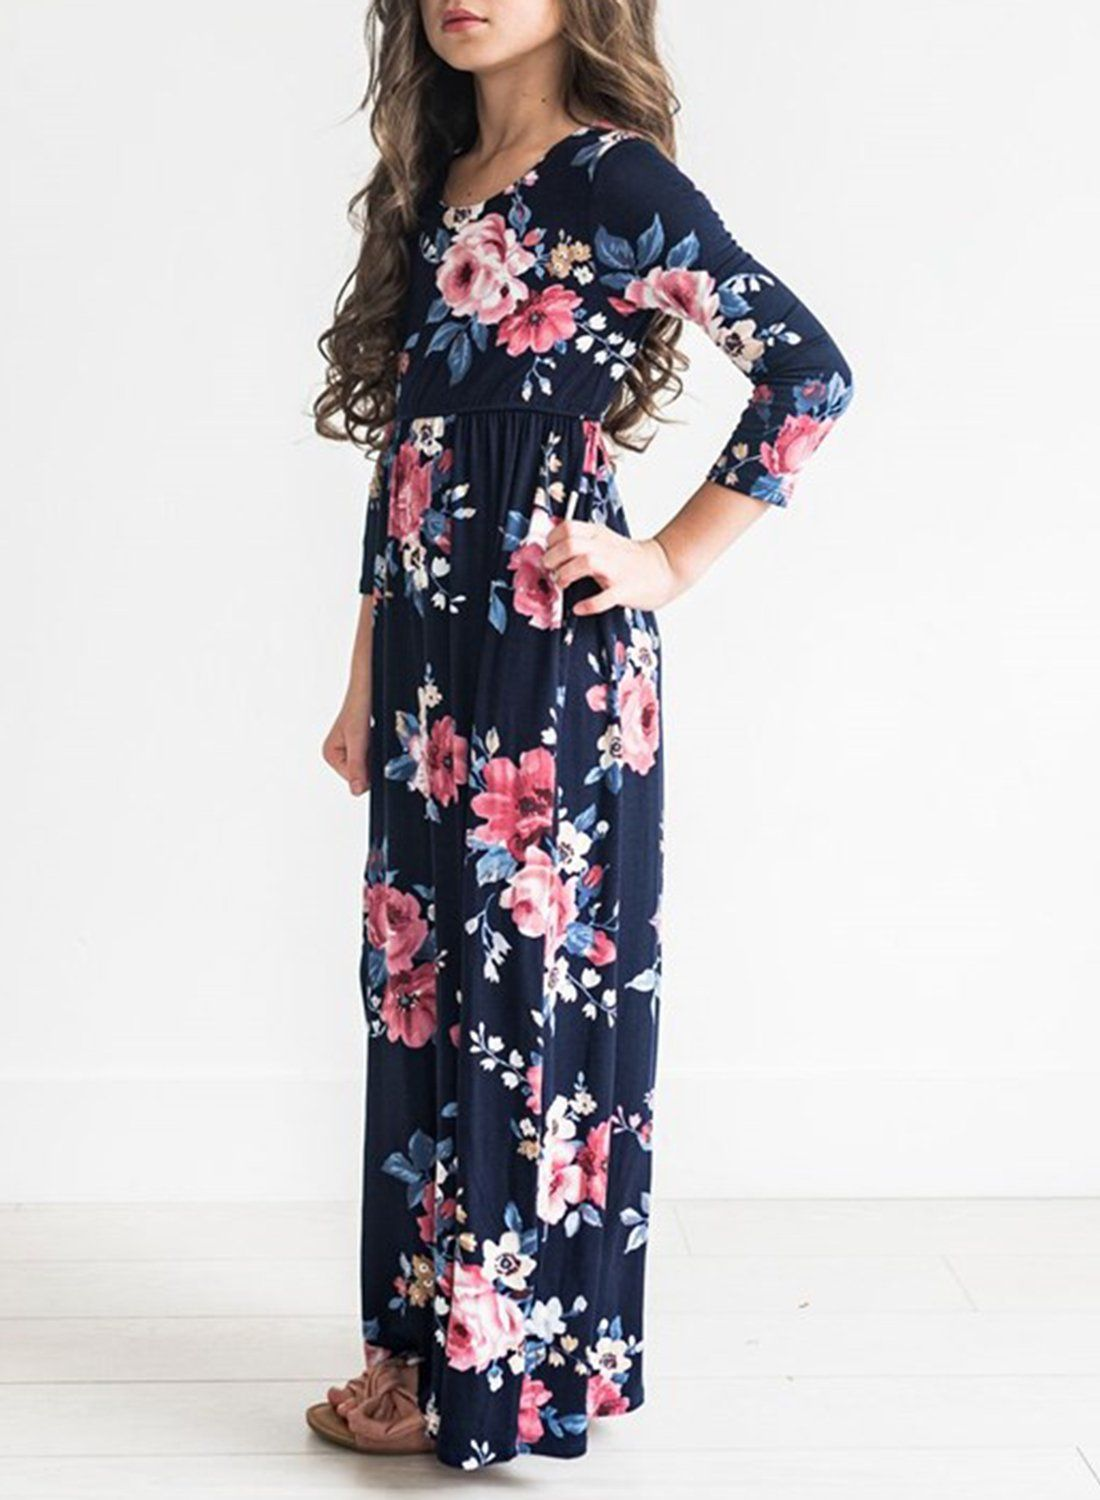 Mitilly Girls Flower 3 4 Sleeve Pleated Casual Swing Long Maxi Dress With Pockets 10 Years Dark Blue Click On Floral Dress Casual Maxi Dress Long Maxi Dress [ 1500 x 1100 Pixel ]